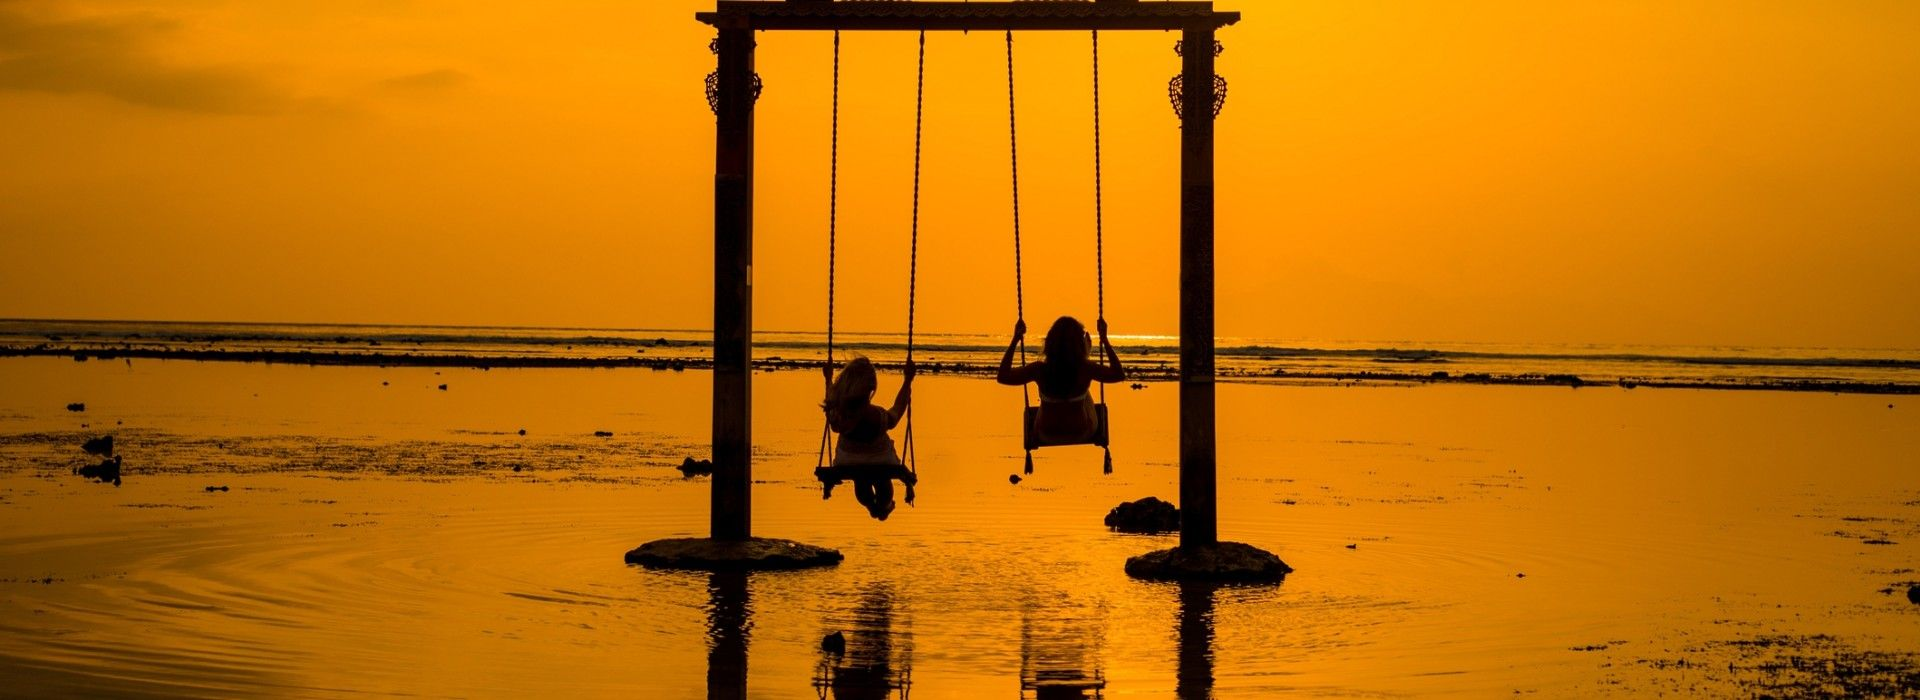 Swinging as the sun sets on one of the Gili Islands.